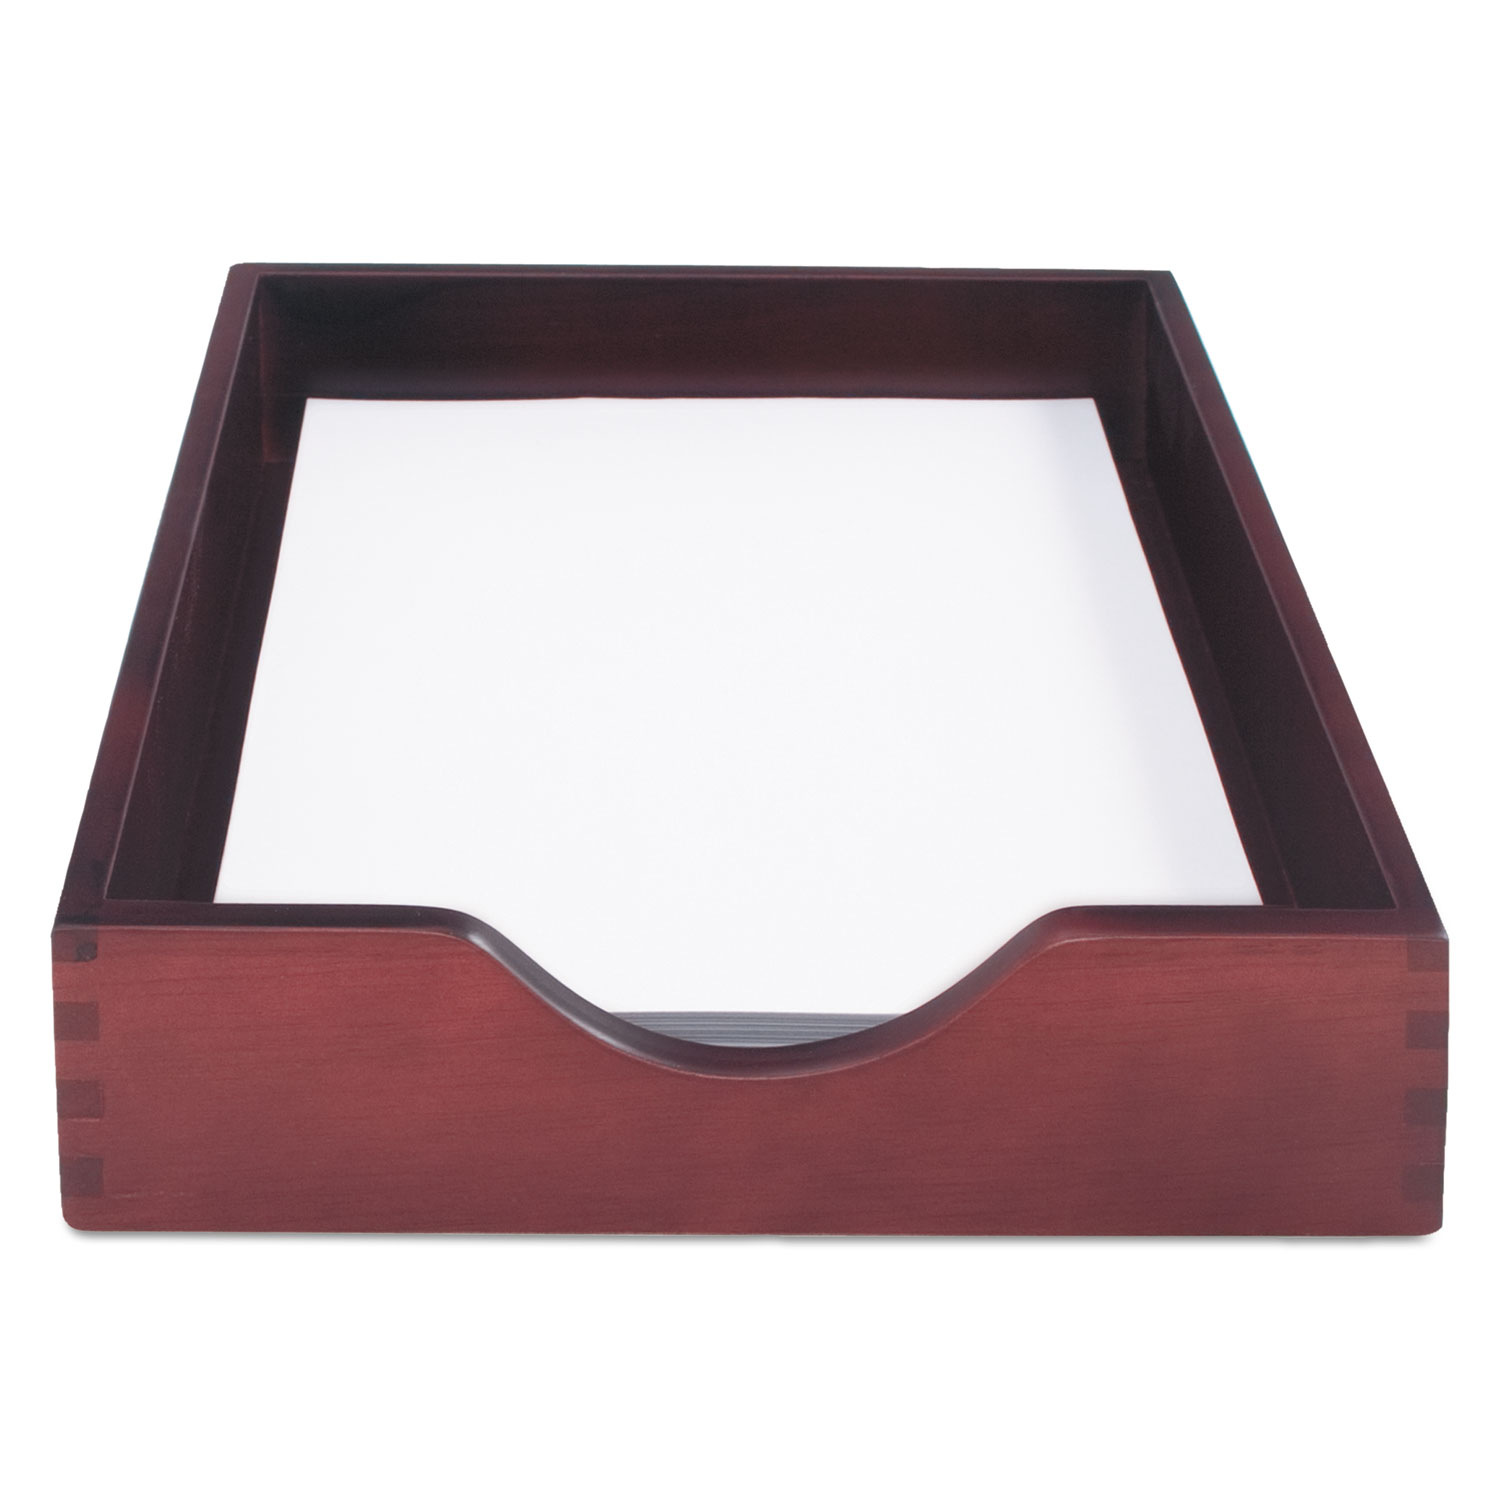 """Hardwood Stackable Desk Trays, 1 Section, Letter Size Files, 10.25"""" x 12.5"""" x 2.5"""", Mahogany"""